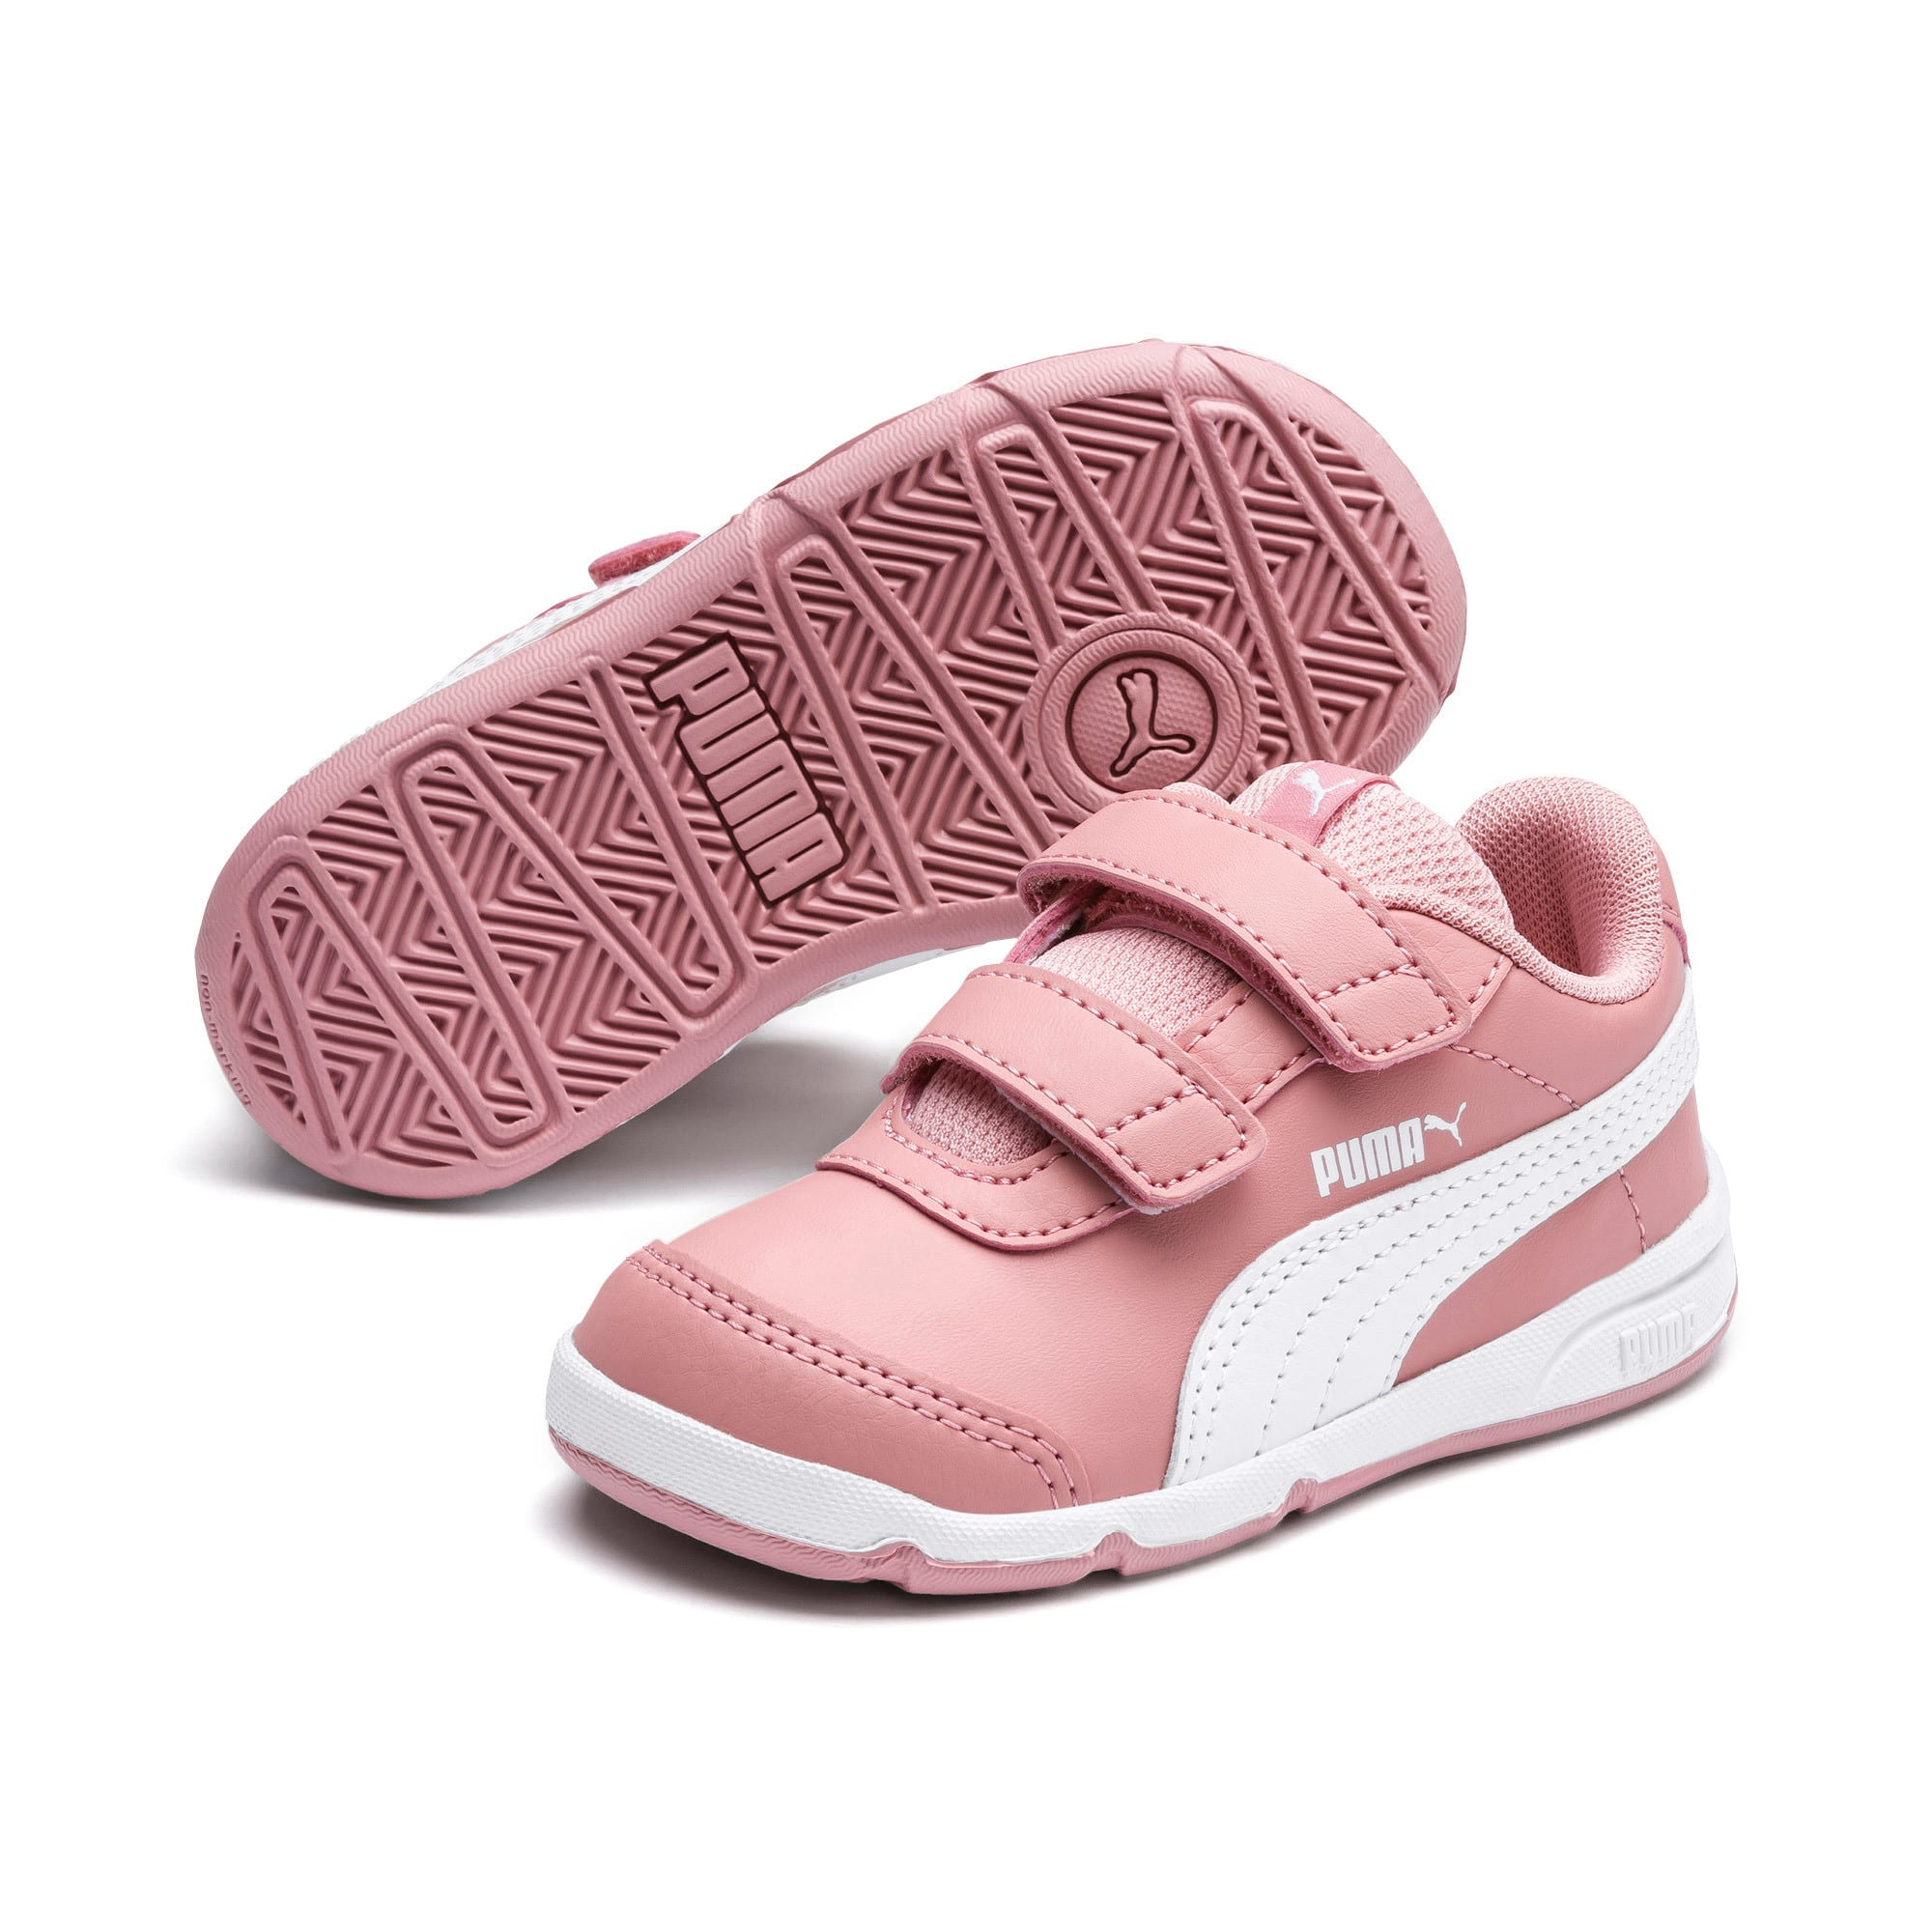 Thumbnail 2 of Basket Stepfleex 2 SL VE V pour bébé, Bridal Rose-Puma White, medium